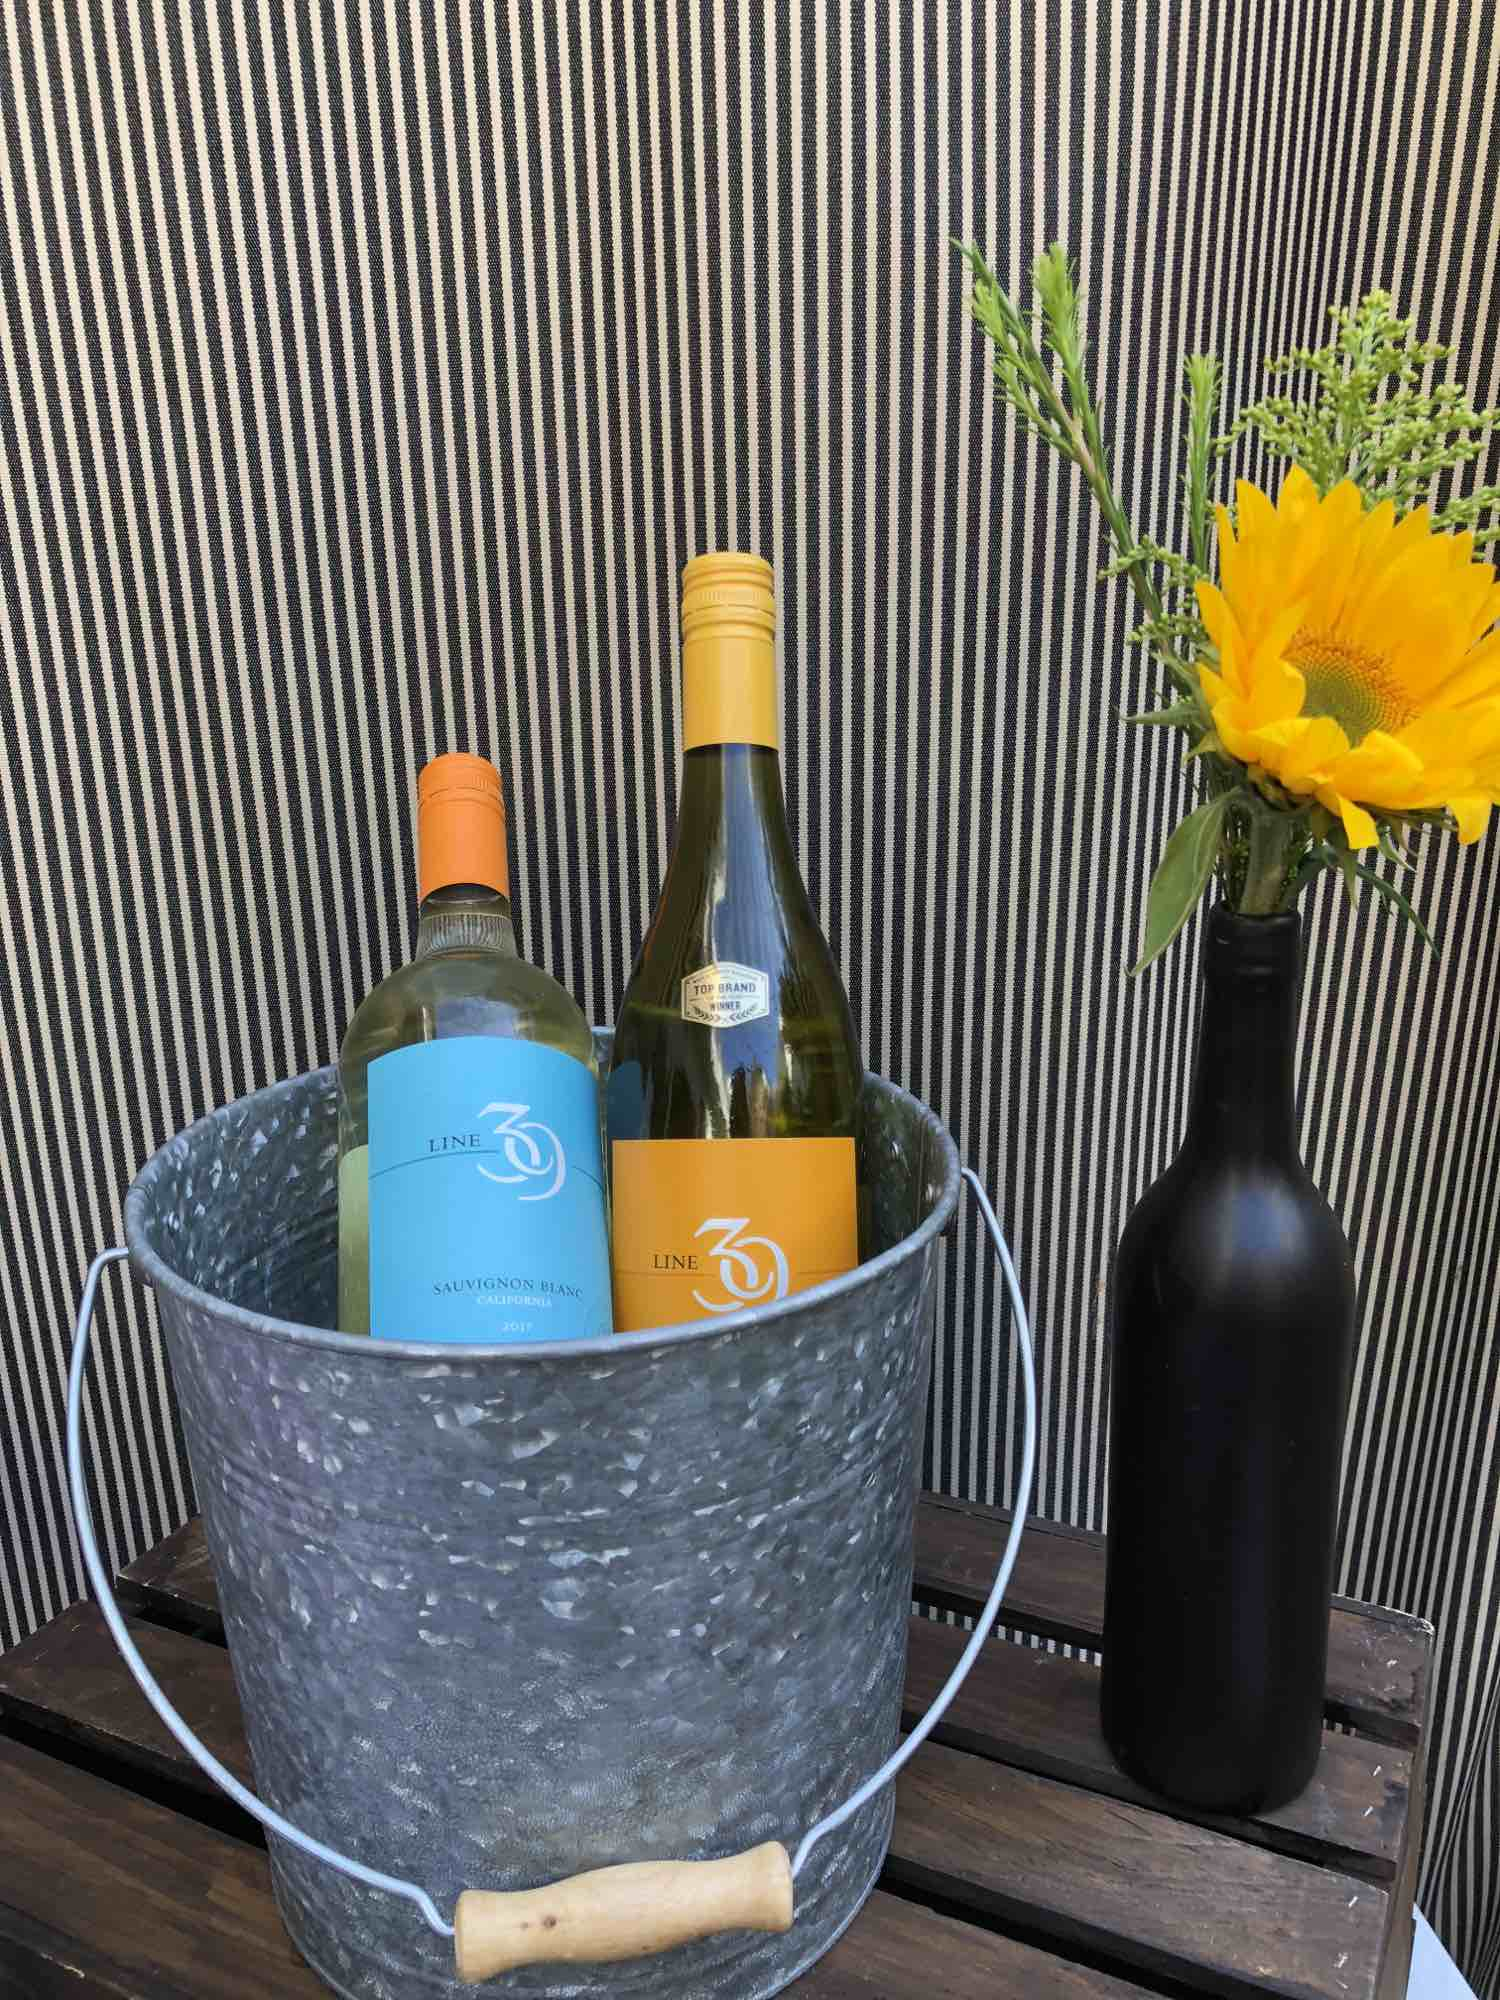 Summer Grill & Chill with Line 39 Wine - Sauvignon Blanc